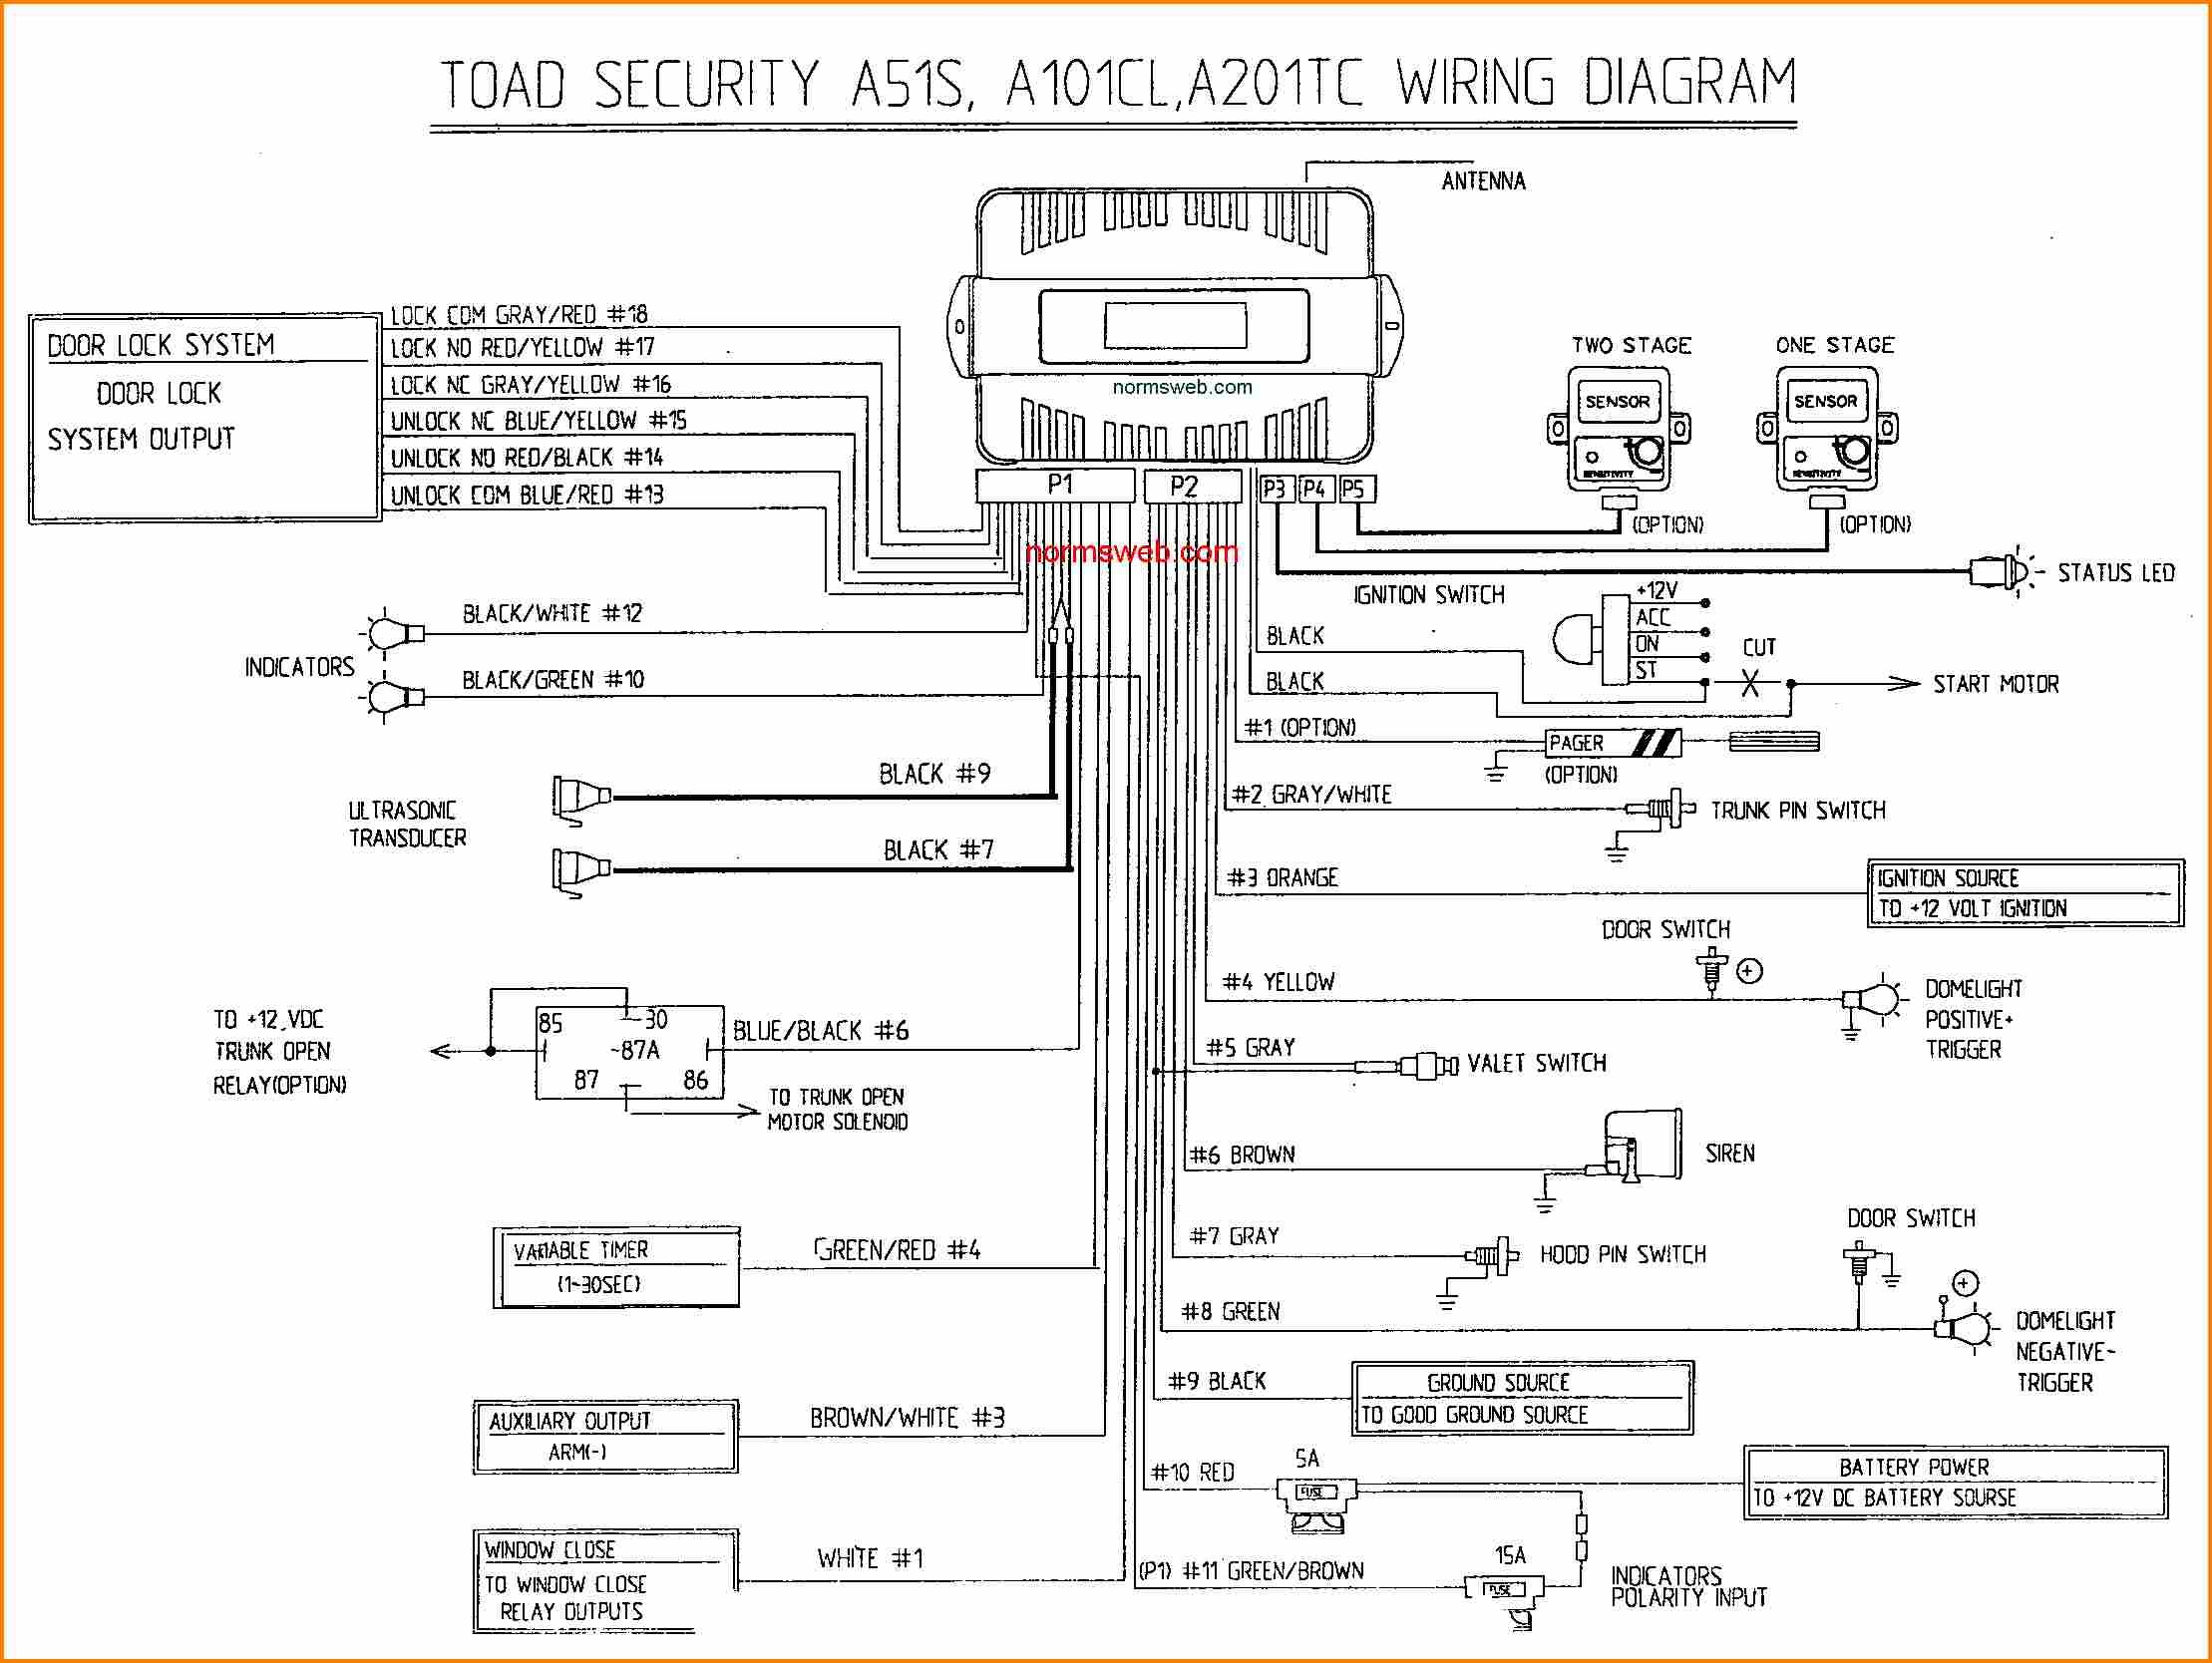 A35E3F Wiring Diagram For Clifford Car Alarm | Wiring ResourcesWiring Resources